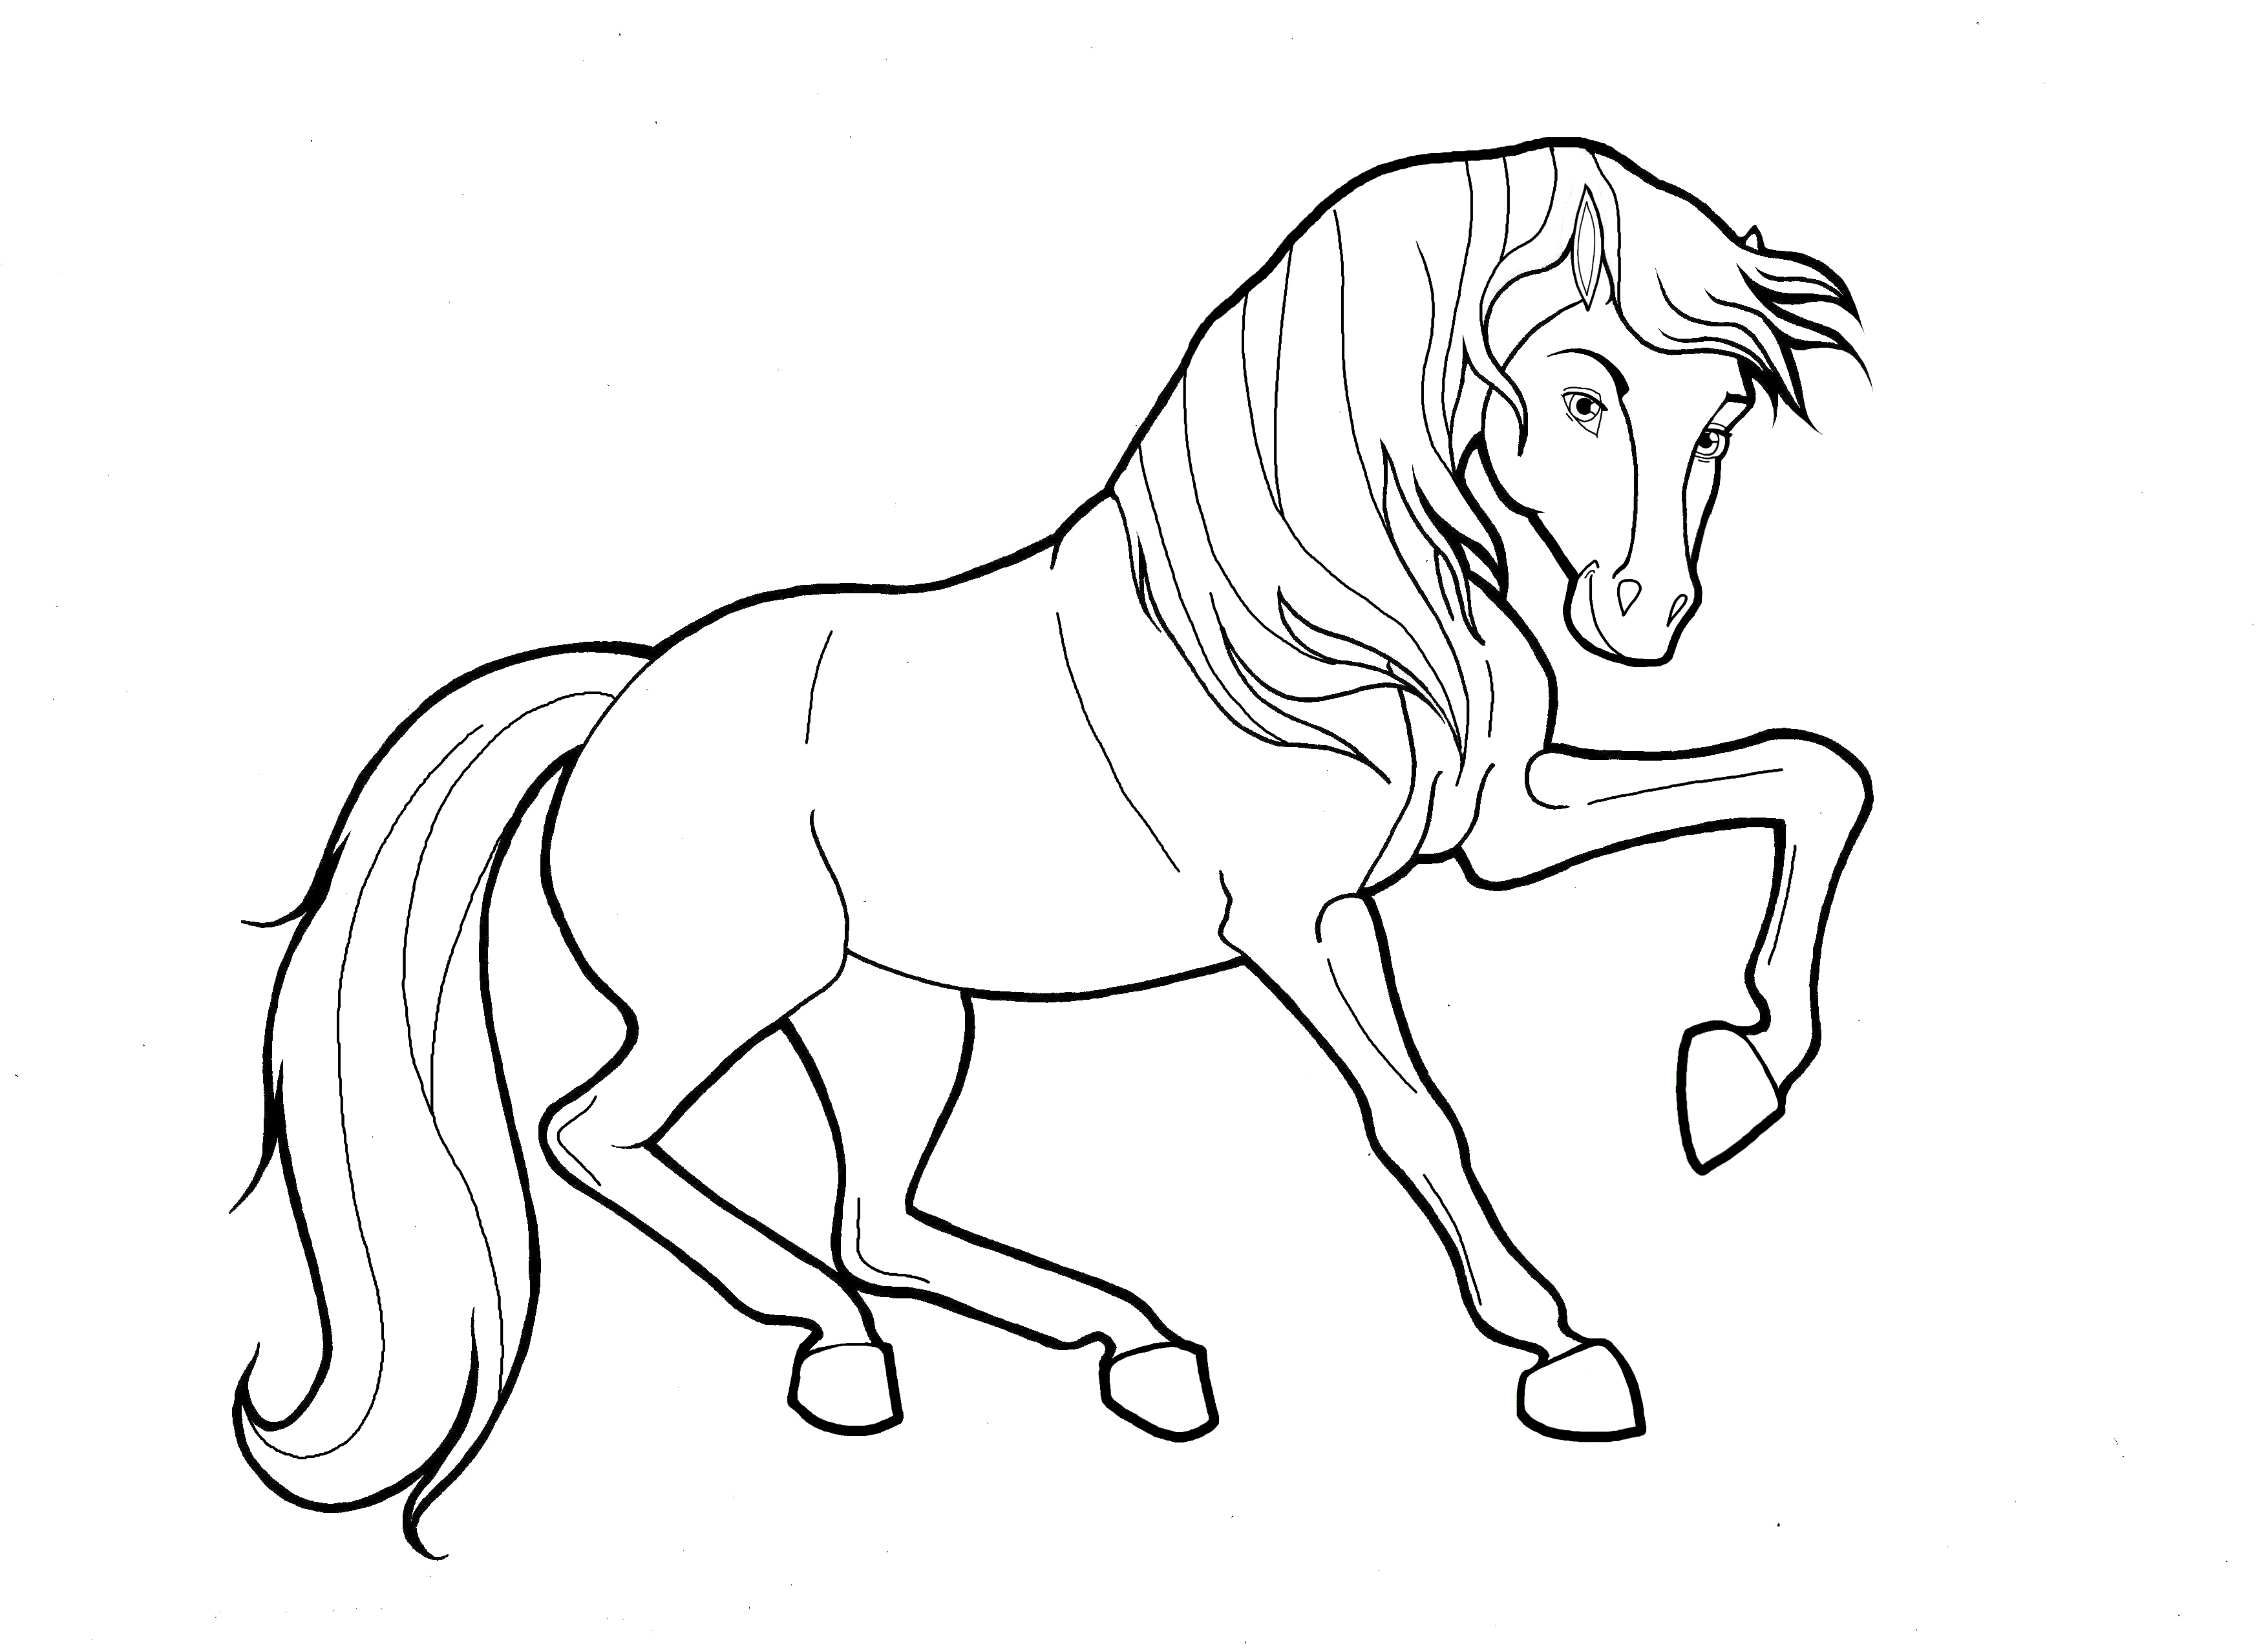 horse printables coloring pages horse color sheets for children activity shelter horse coloring printables pages